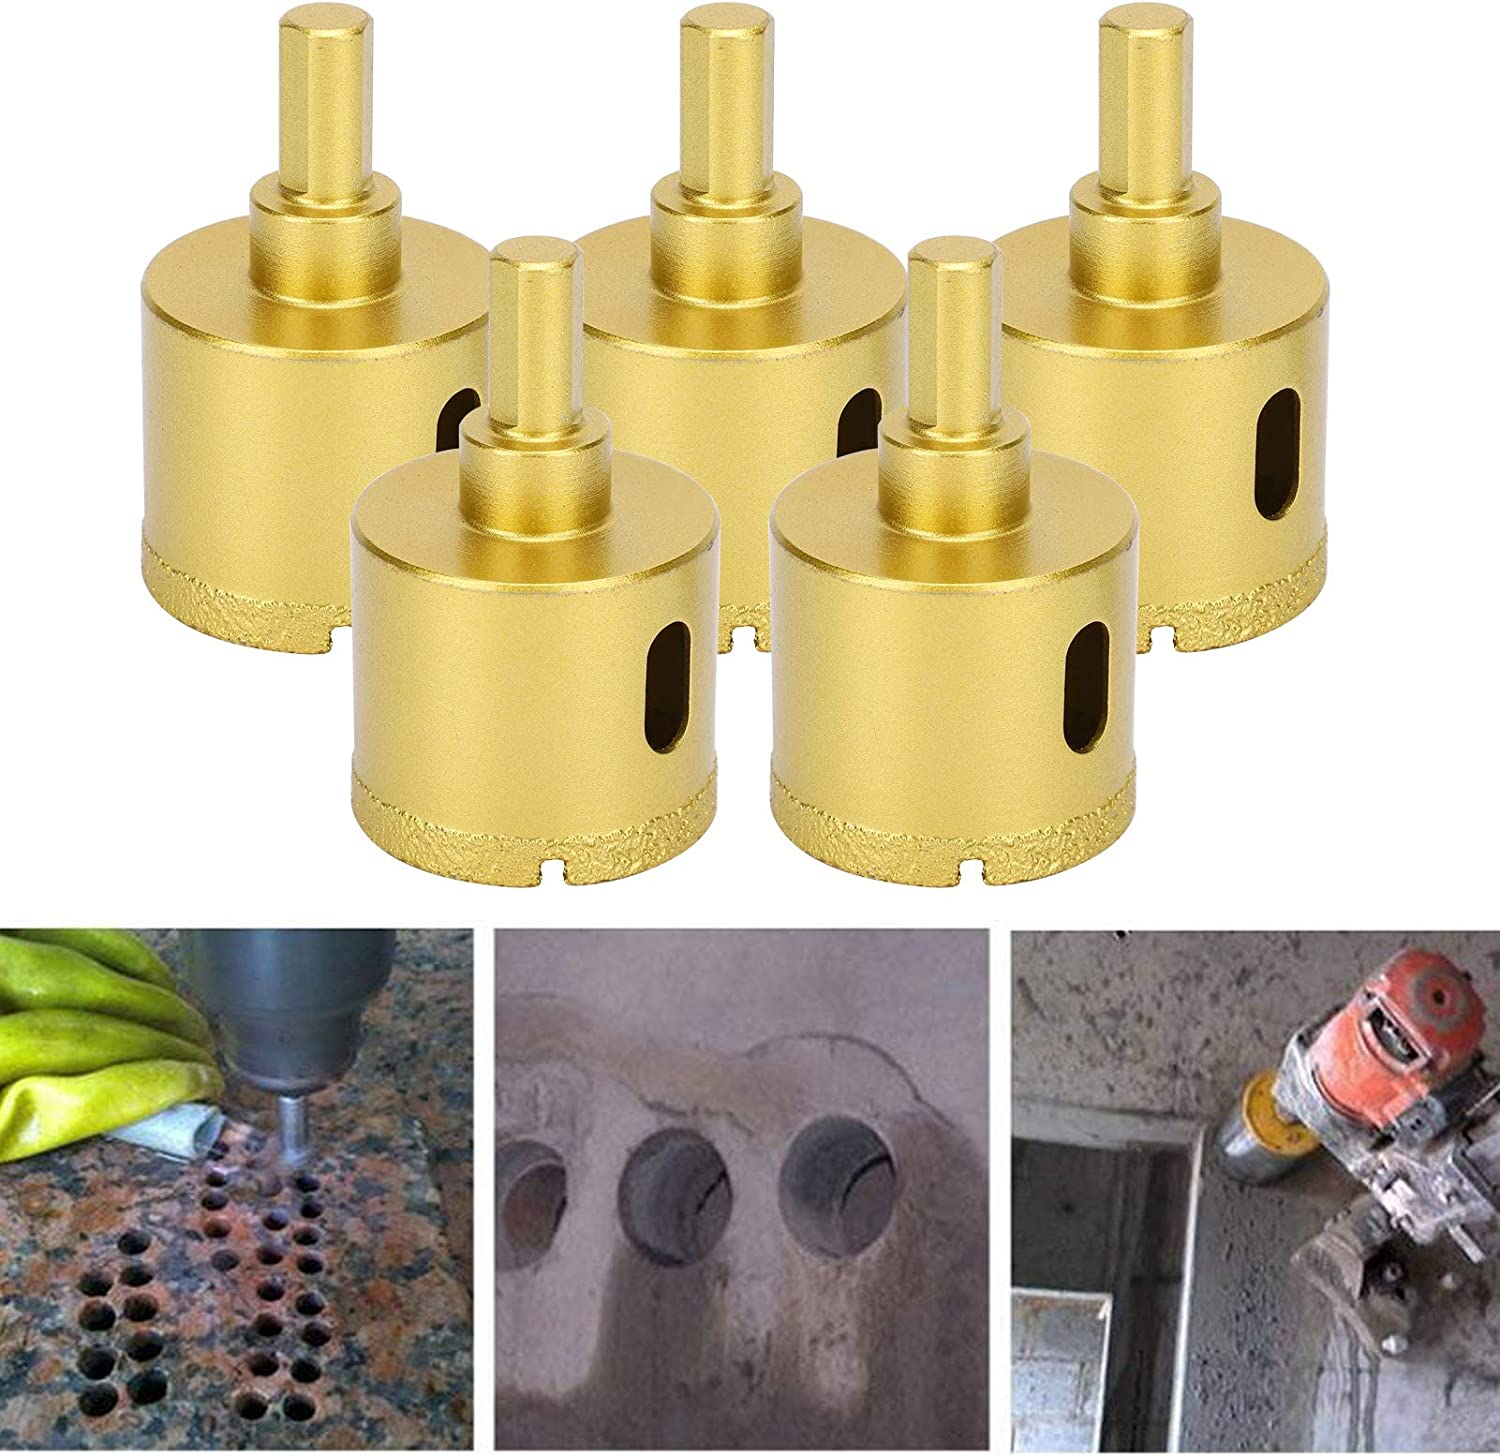 Firmly Diamond Drill Cutter Drilling Tools for Industrial Marble Concrete Ceramic Glass Artificial Stone 5Pcs Diamond Hole Drill 40mm Diamond Hole Bit